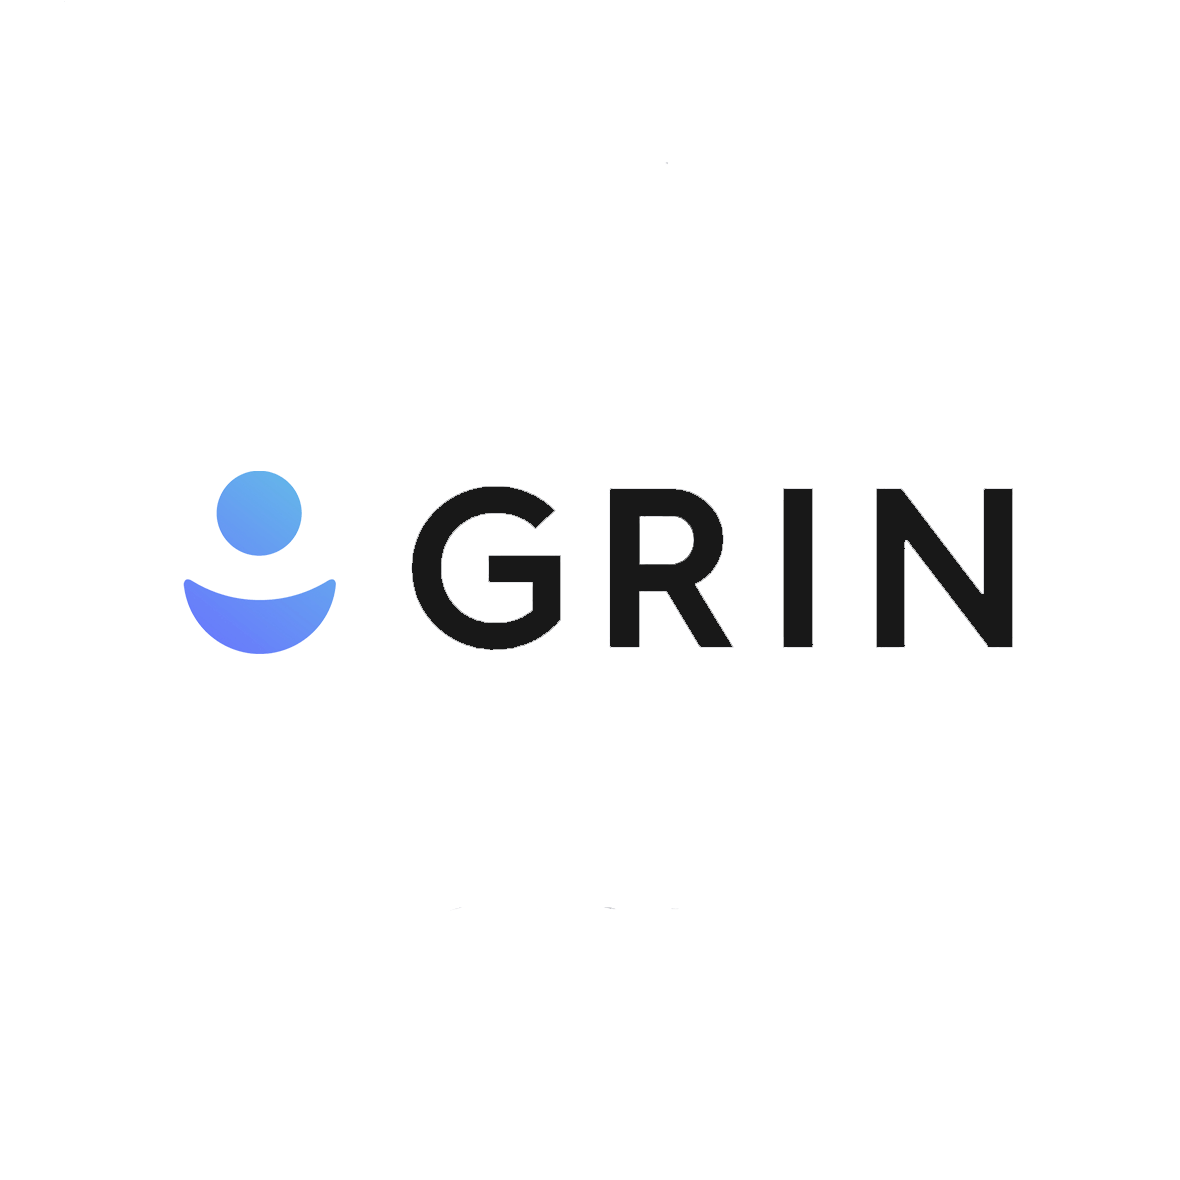 GRIN is the only influencer marketing software built for ecommerce. From discovery & outreach to relationship management & campaigns, product seeding, discount codes & affiliate links, content & rights management, sales tracking & deep analytics - GRIN helps you do it all.